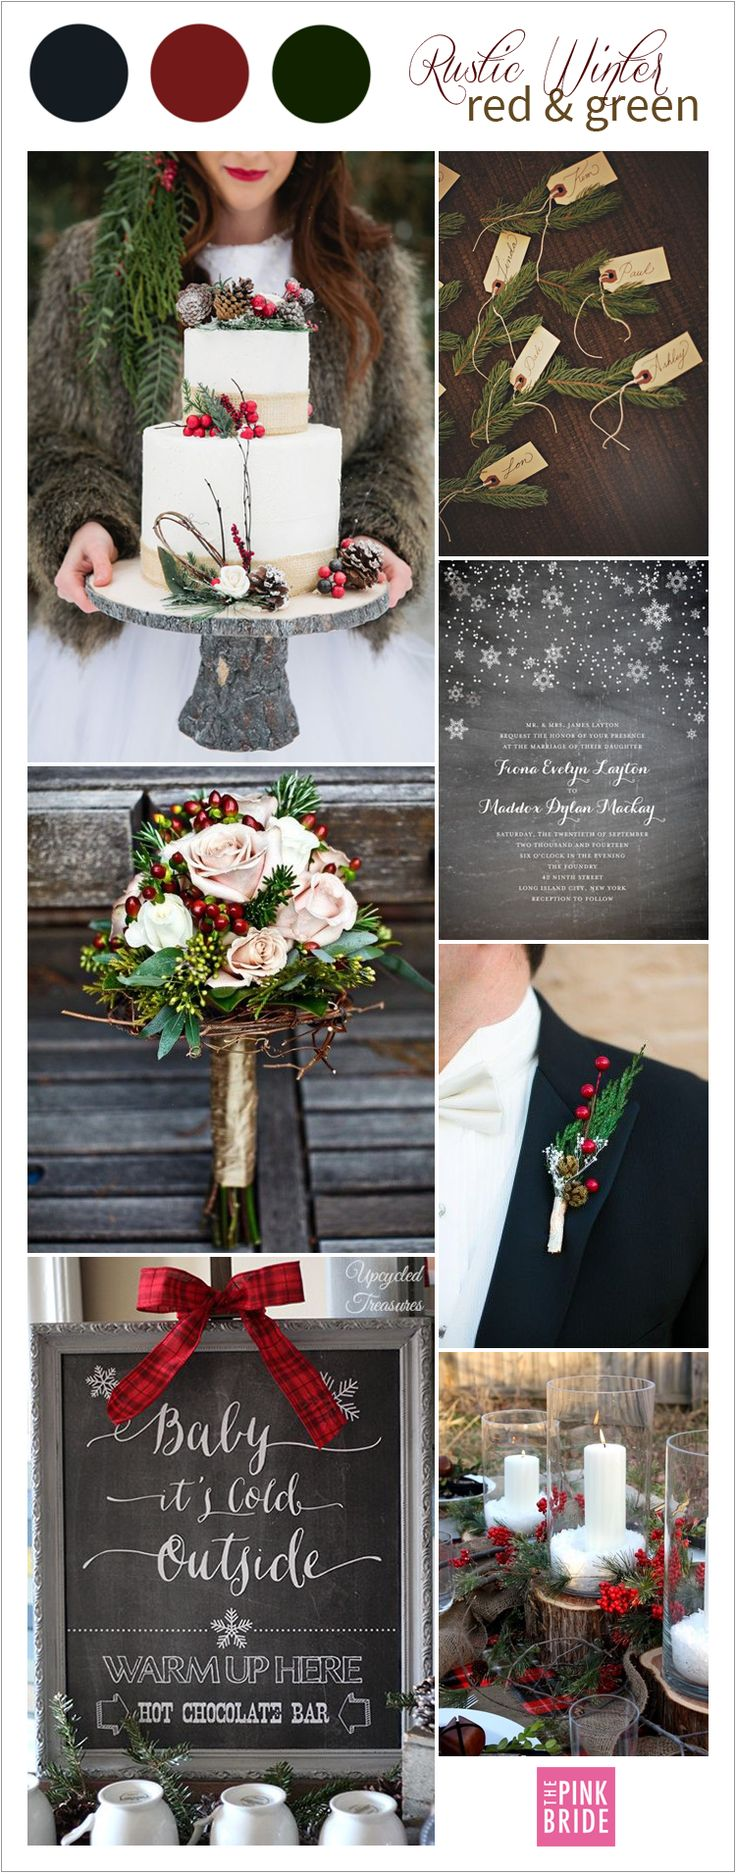 Rustic winter wedding color palette inspiration board in holiday red and green | The Pink Bride www.thepinkbride.com